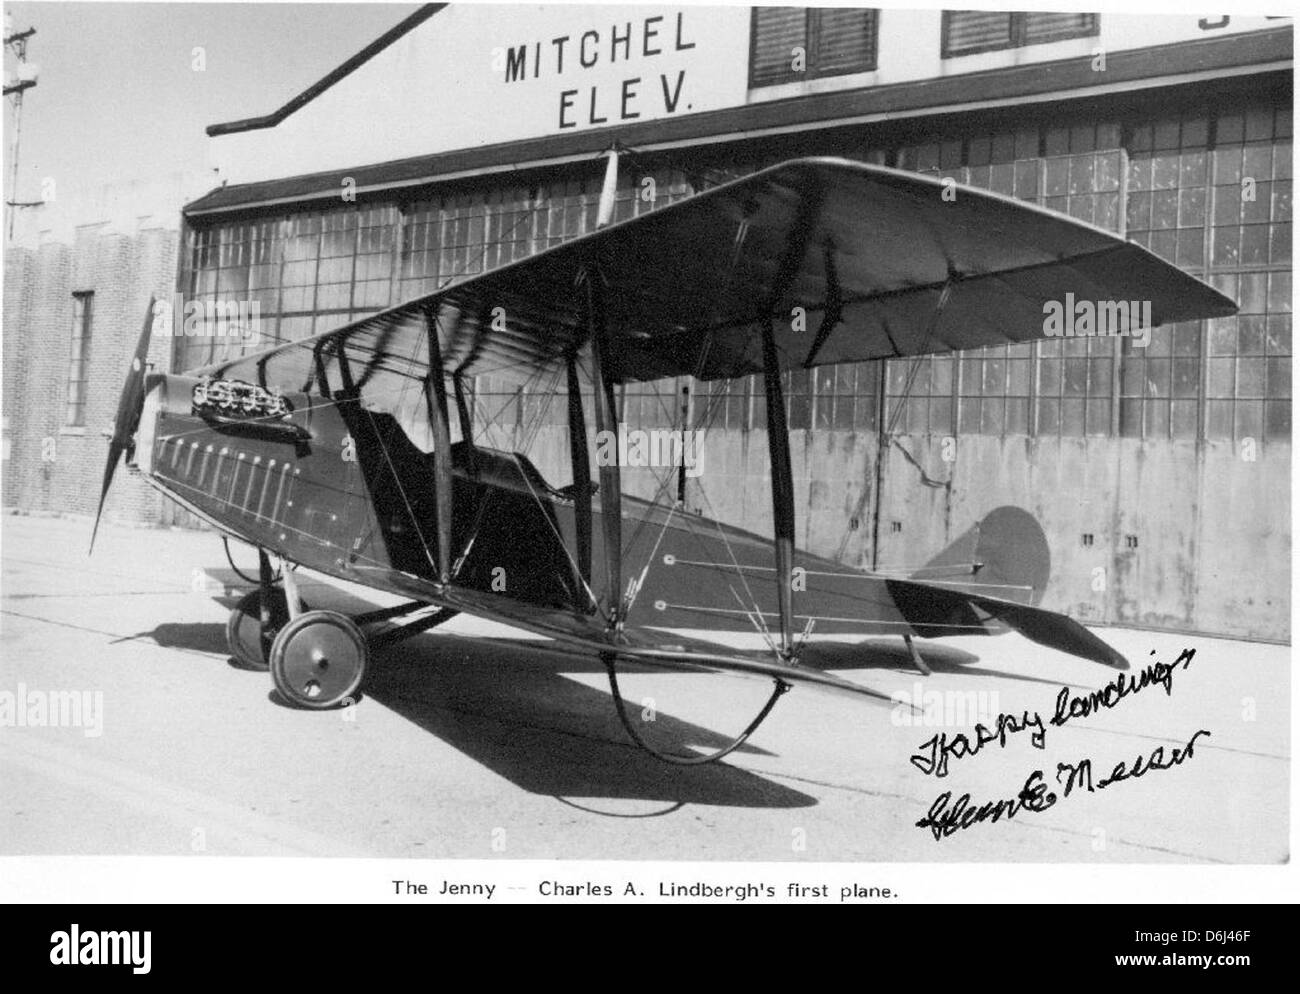 04-00528 Charles Lindbergh's first plane - Stock Image